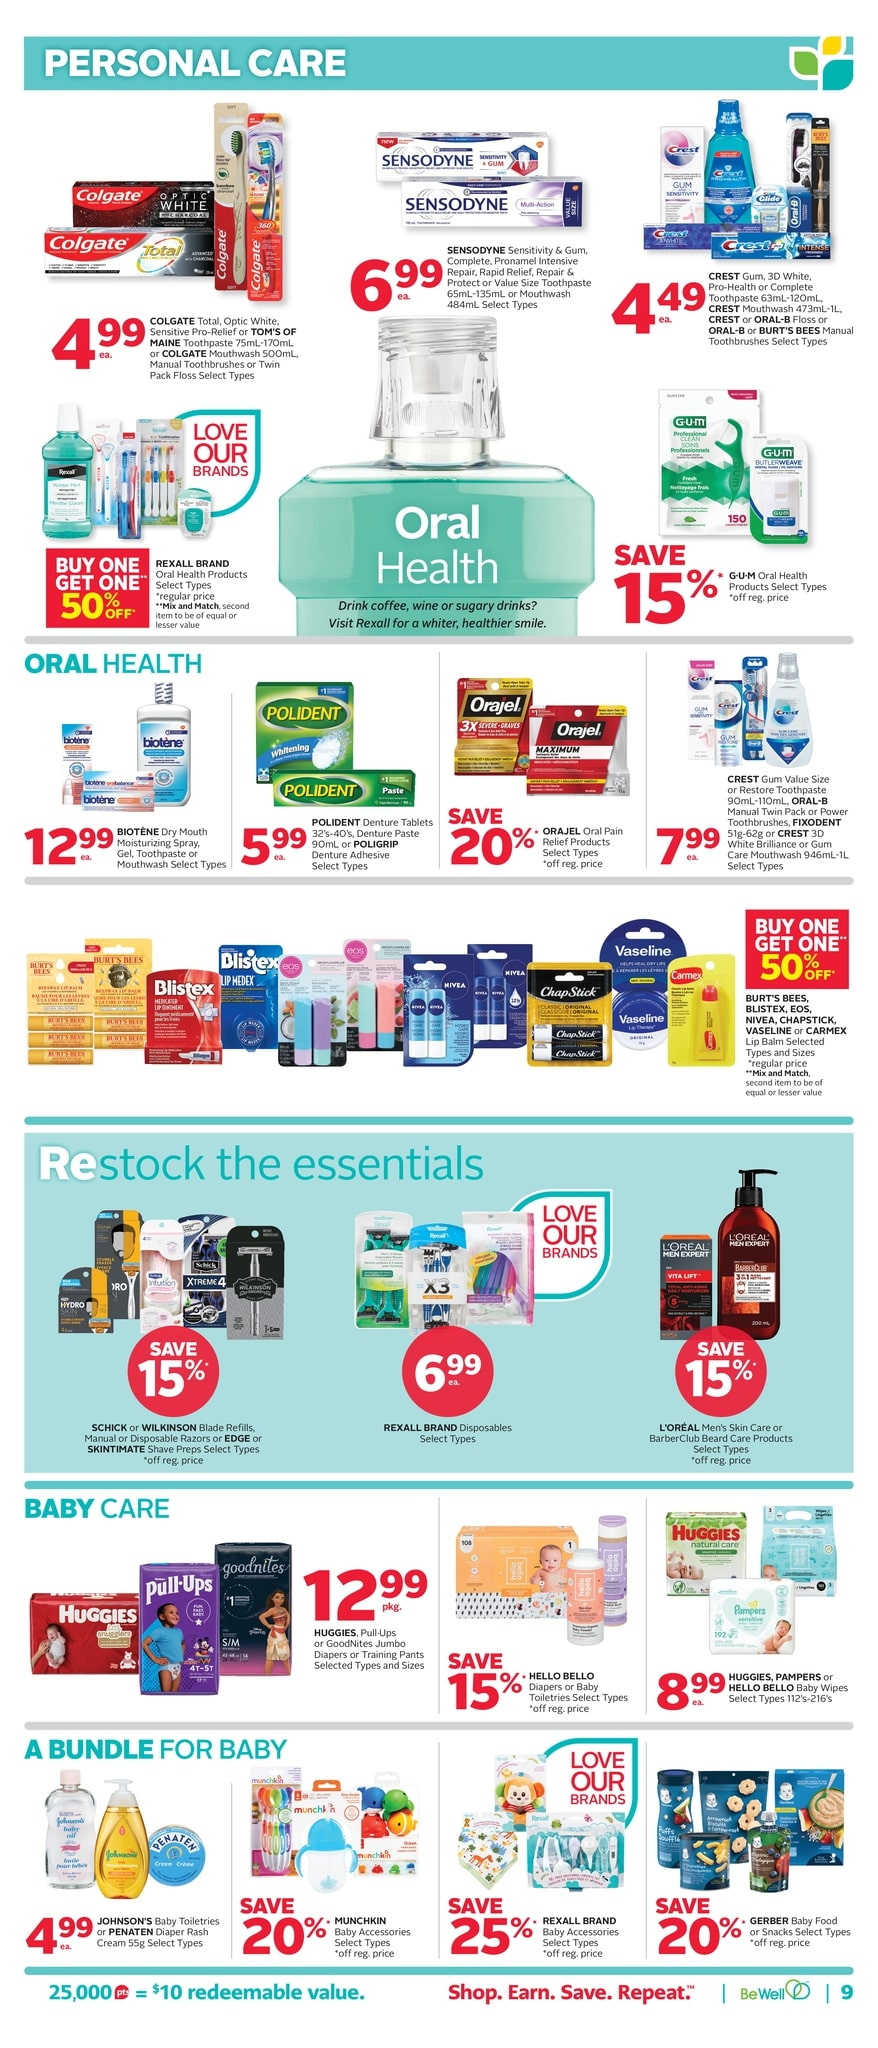 Rexall - Weekly Flyer Specials - Page 13